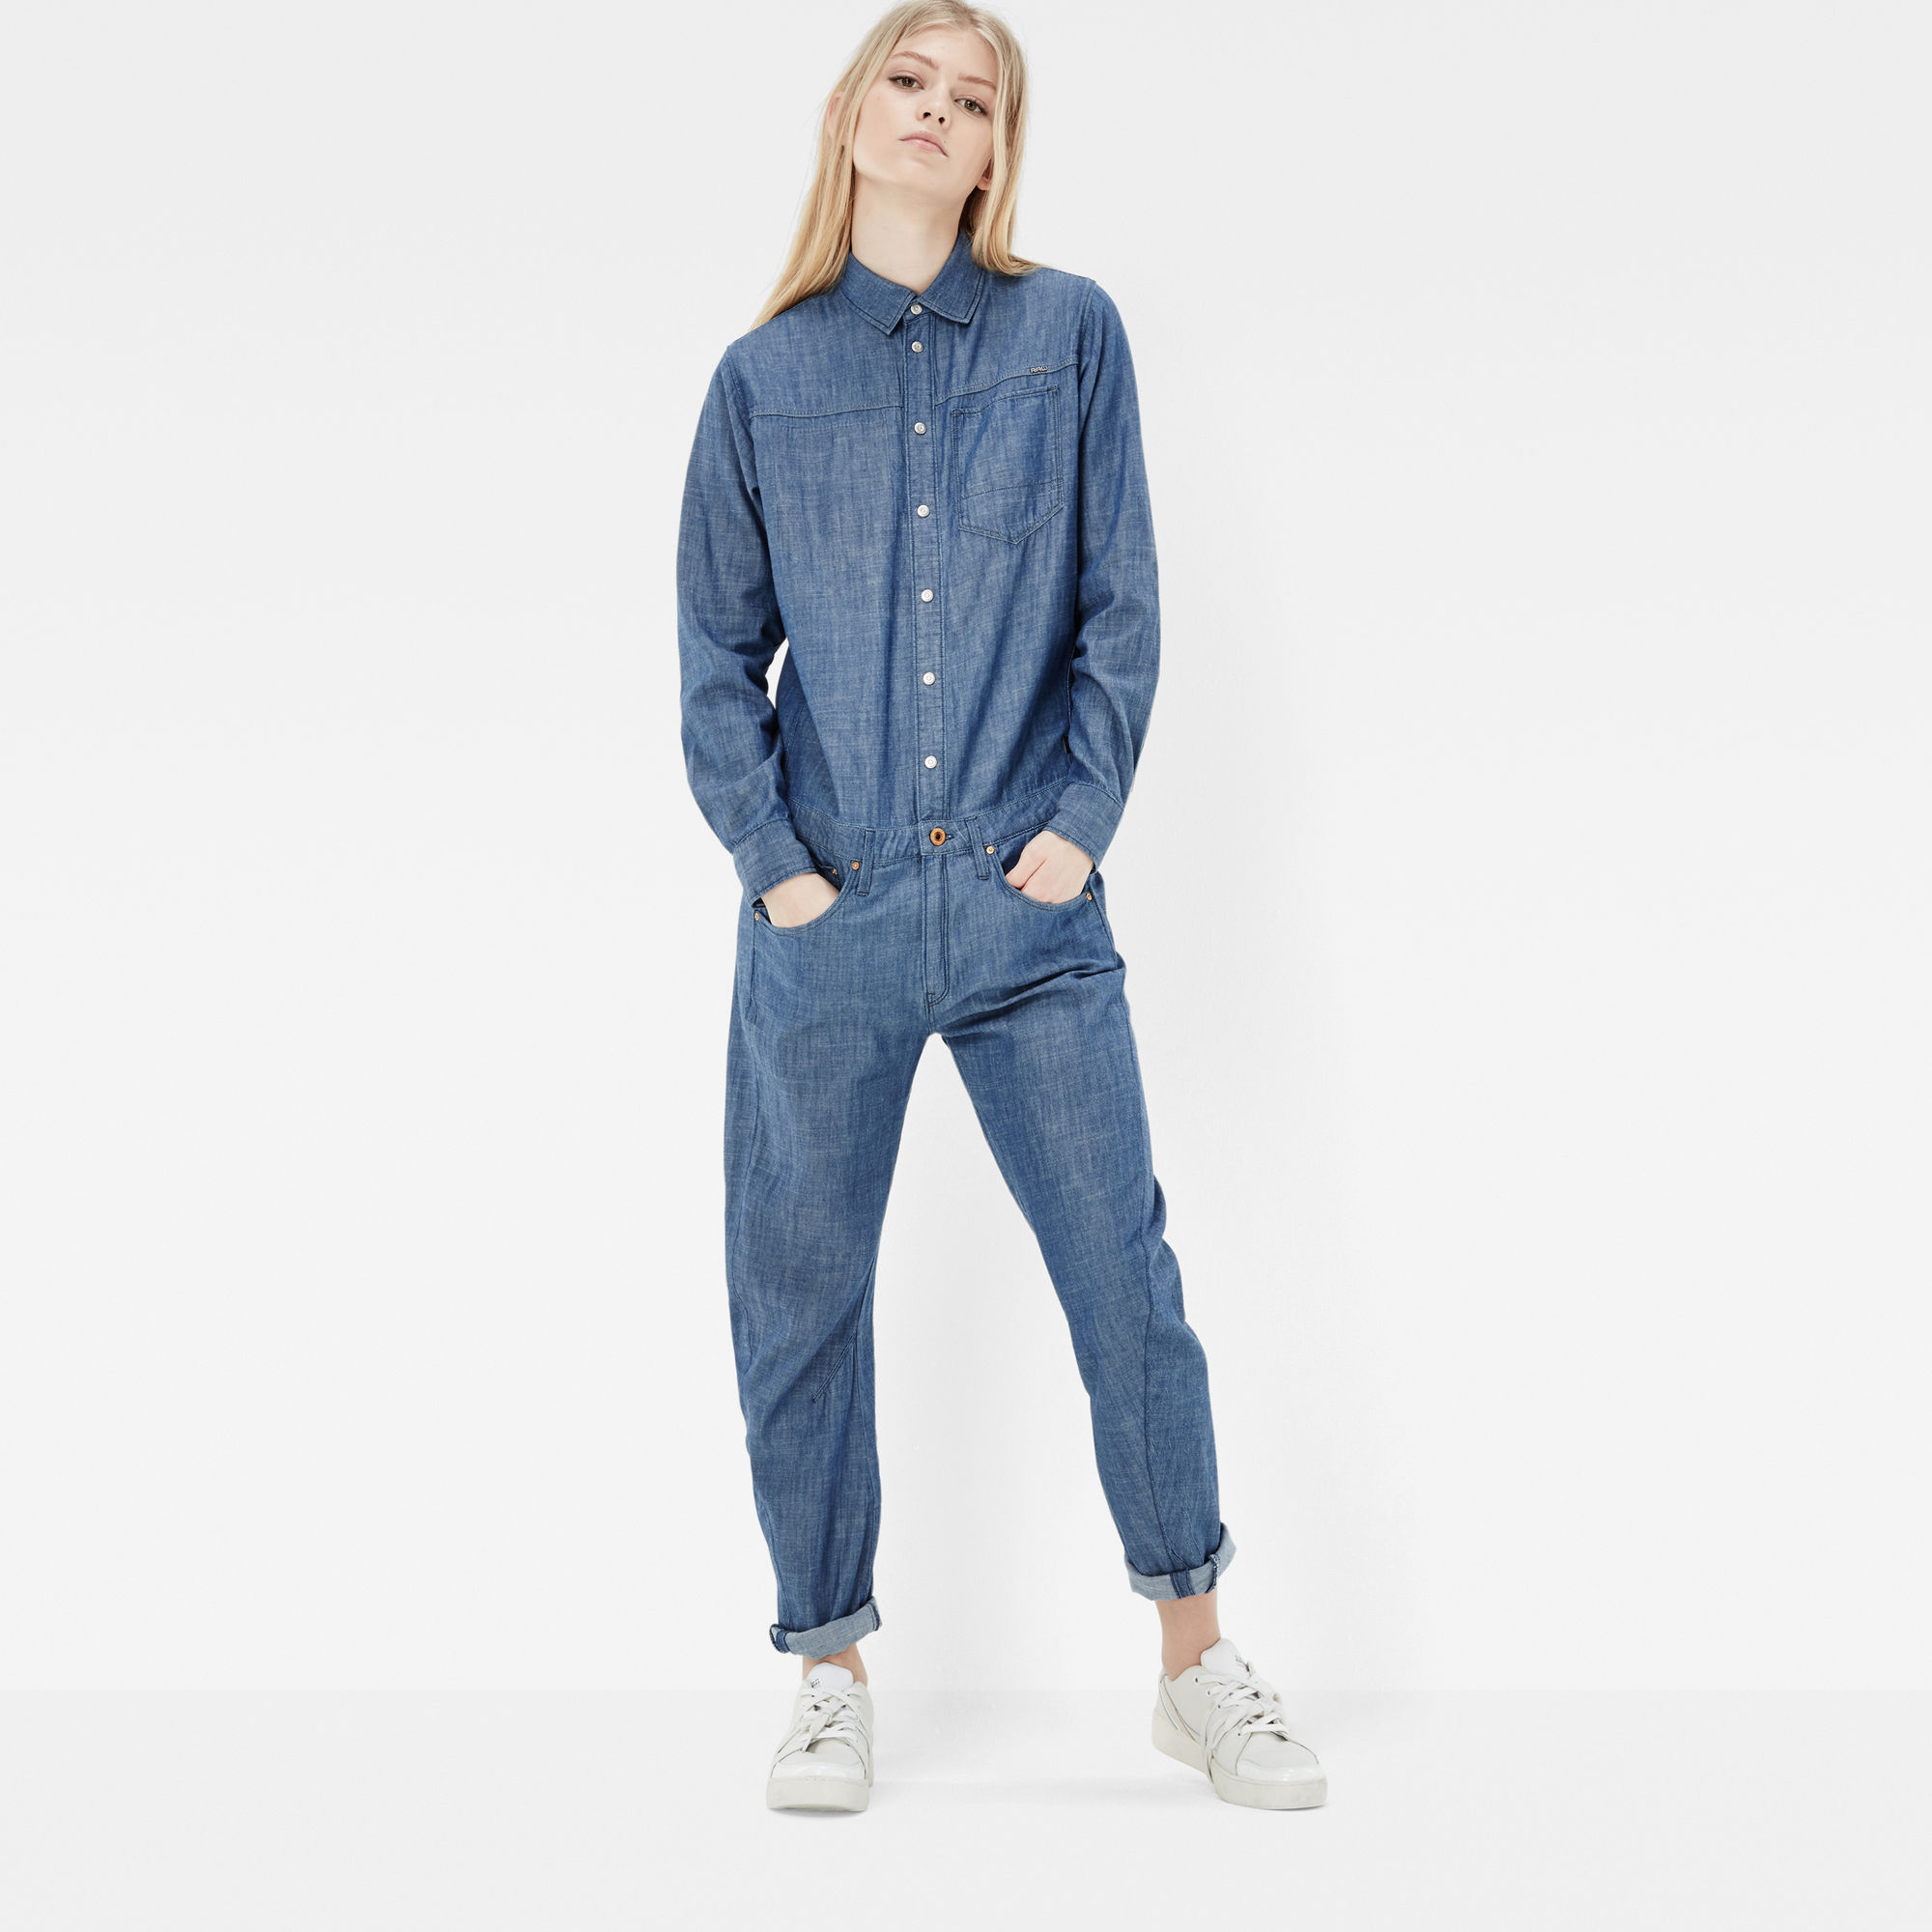 Arc Boyfriend Boilersuit